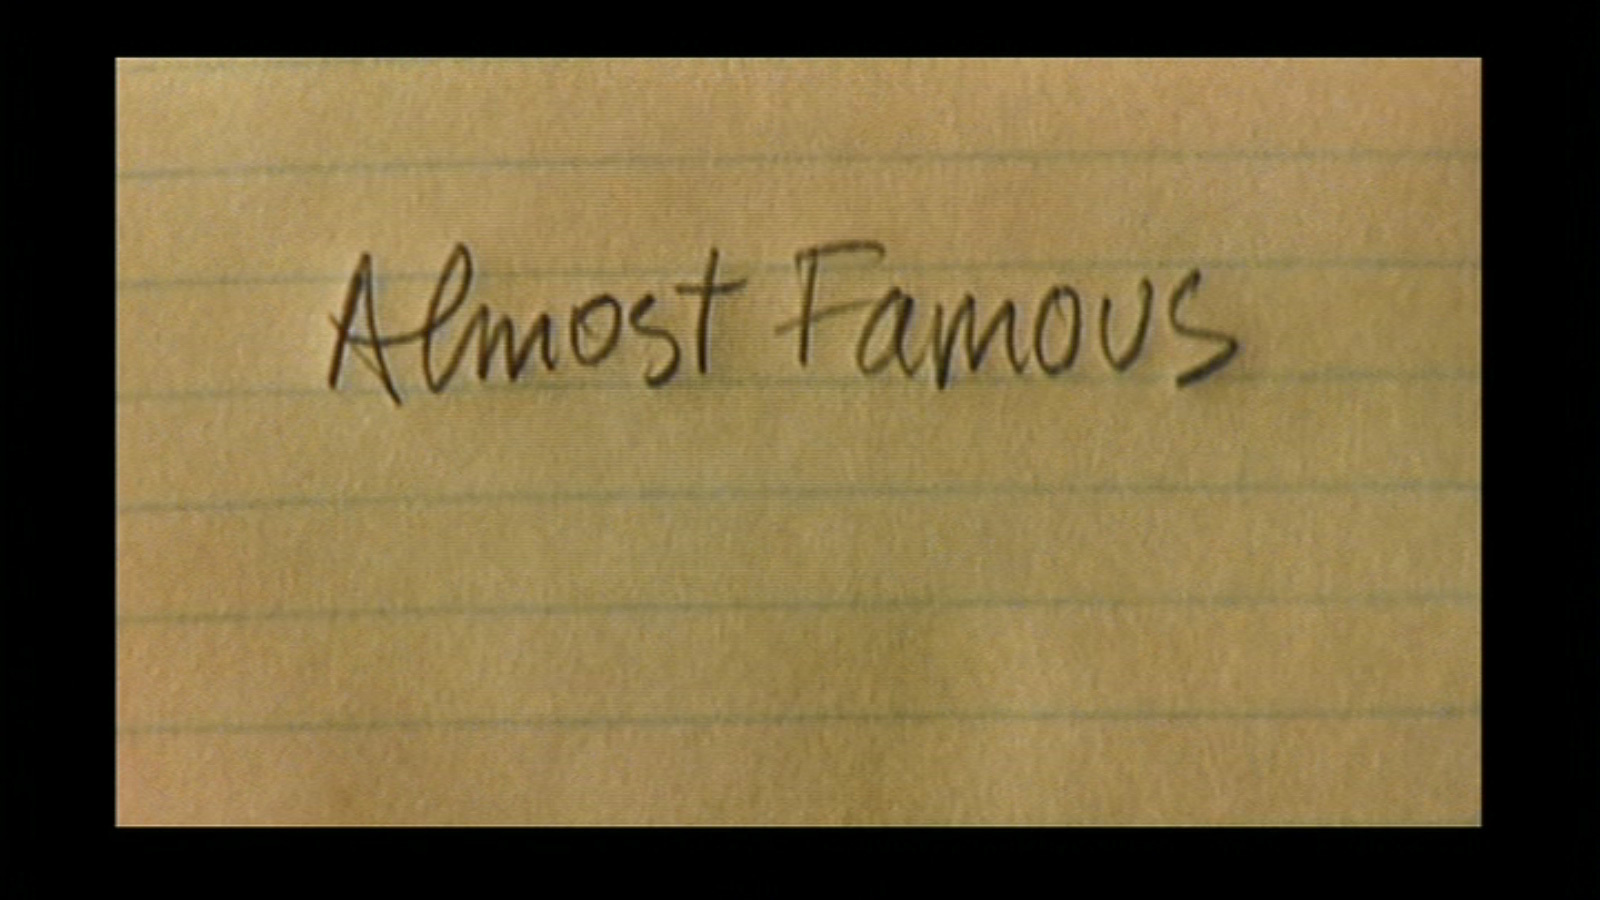 New 1000 wallpapers blog: Almost famous wallpapers